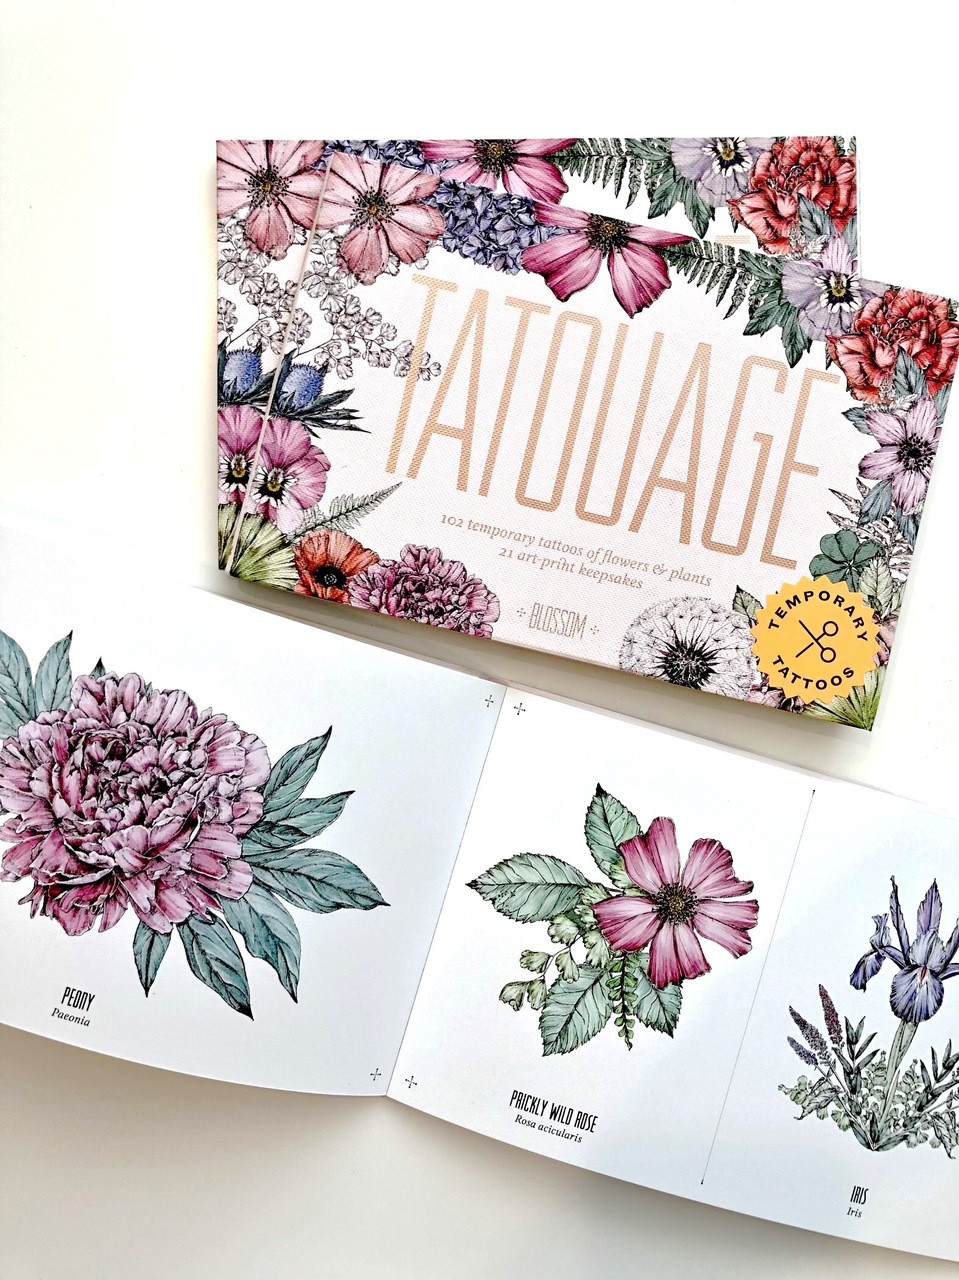 e034aa271 Tatouage: Blossom: 102 Temporary Tattoos of Flowers & Plants and 21  Art-Print Keepsakes ( Magma for Laurence King ) - THE BEACH PLUM COMPANY